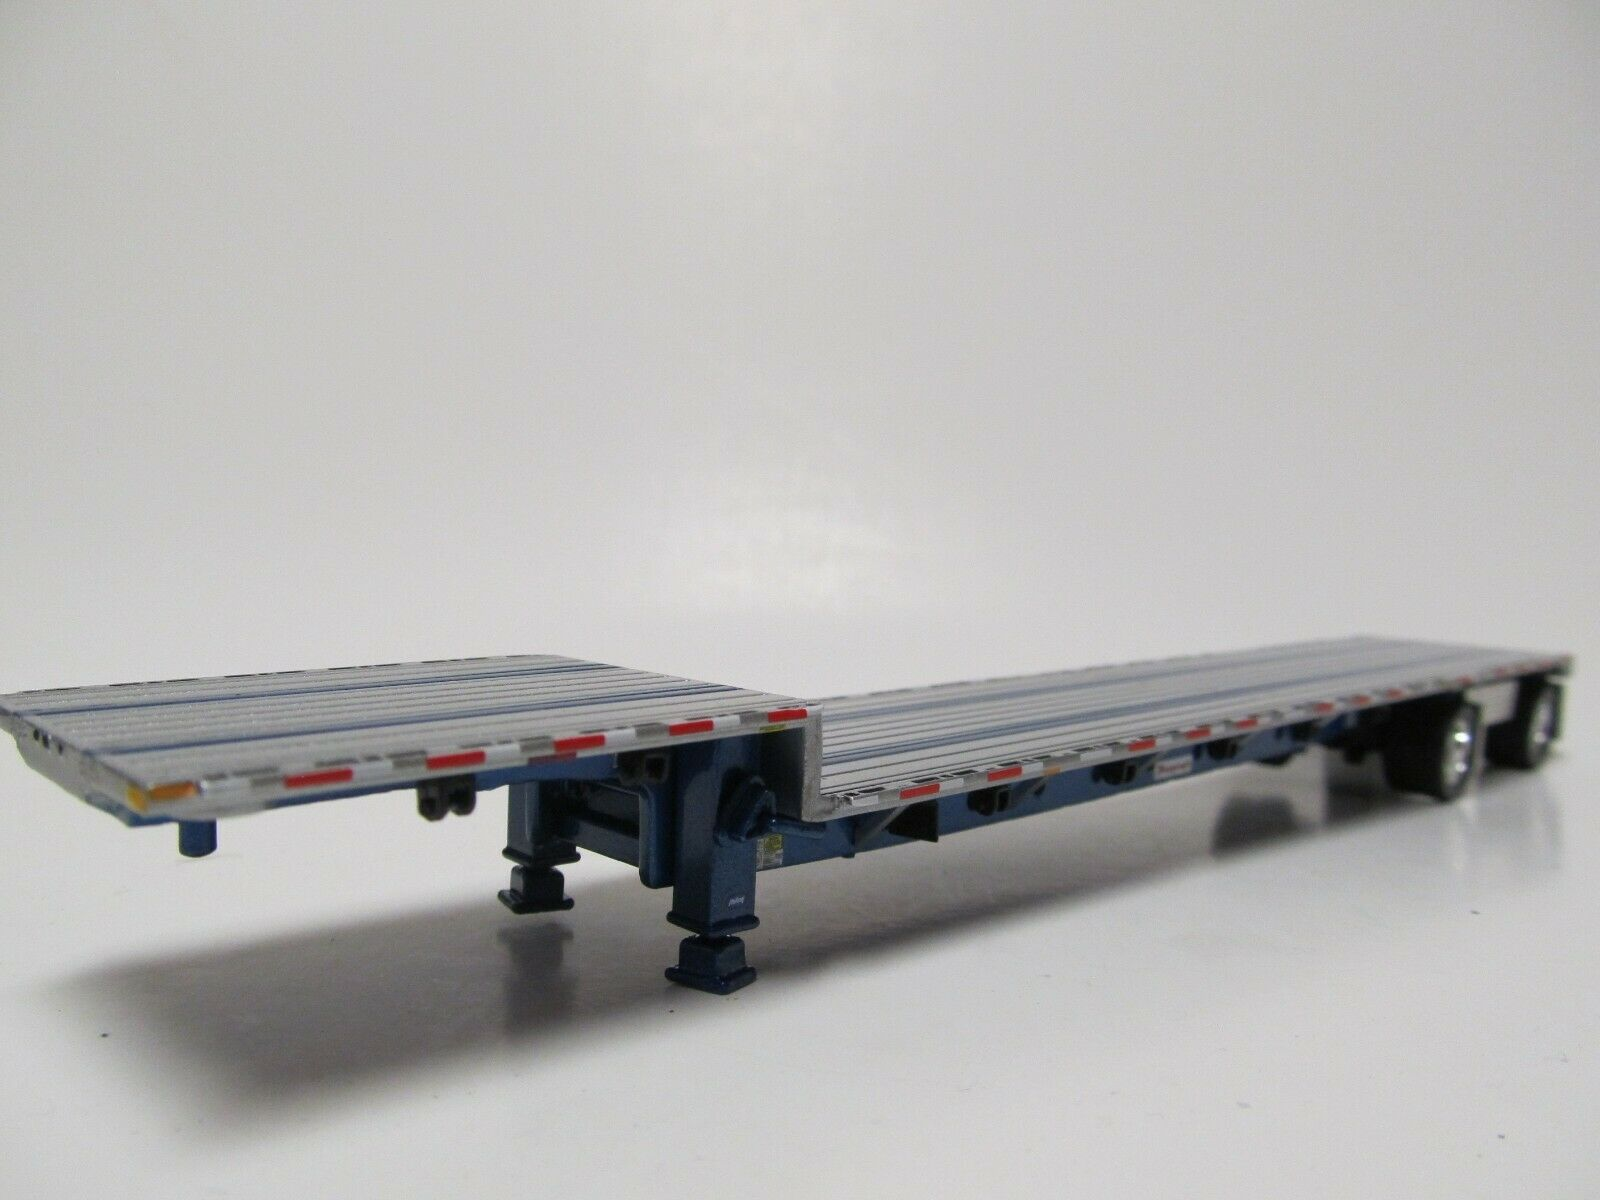 DCP 1/64 SCALE TRANSCRAFT STEP DECK TRAILER SILVER DECK WITH BLUE FRAME